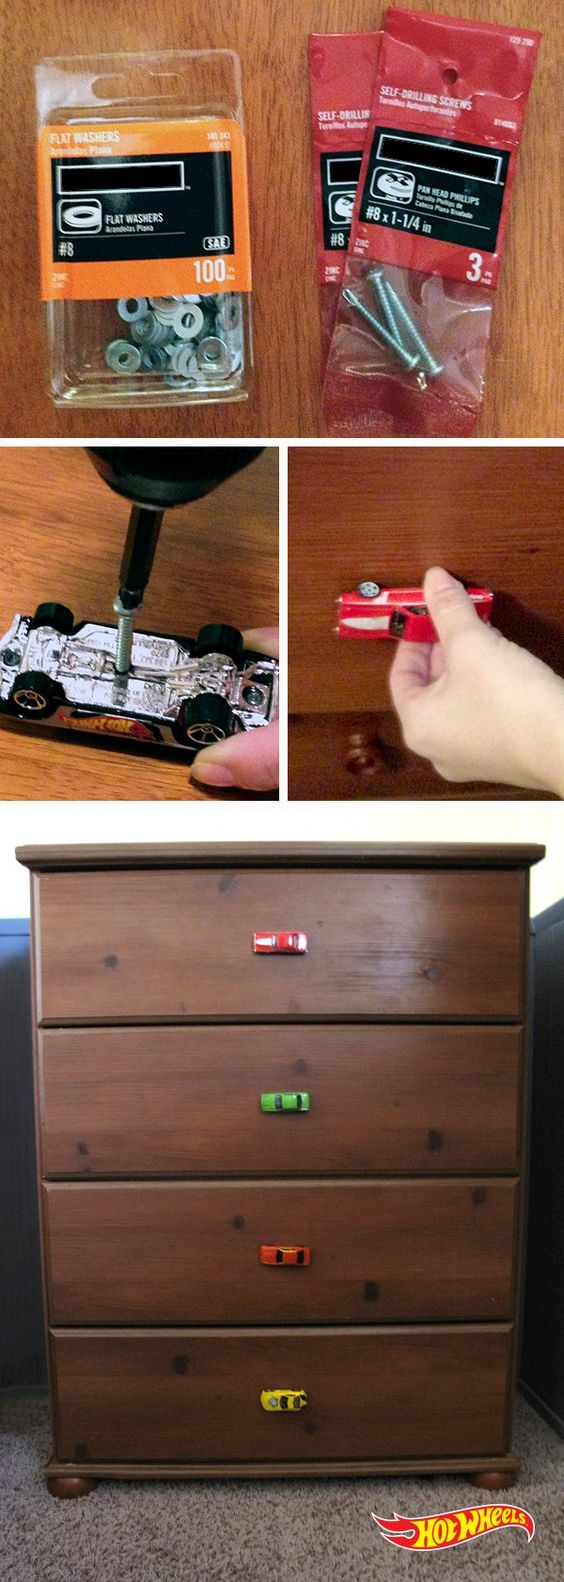 Hot Wheels 'car knobs' are a winning way to decorate your kid's drawers. 1. Drill a self-tapping screw into your Hot Wheels car. 2.Replace existing drawer knob with Hot Wheels car knob.